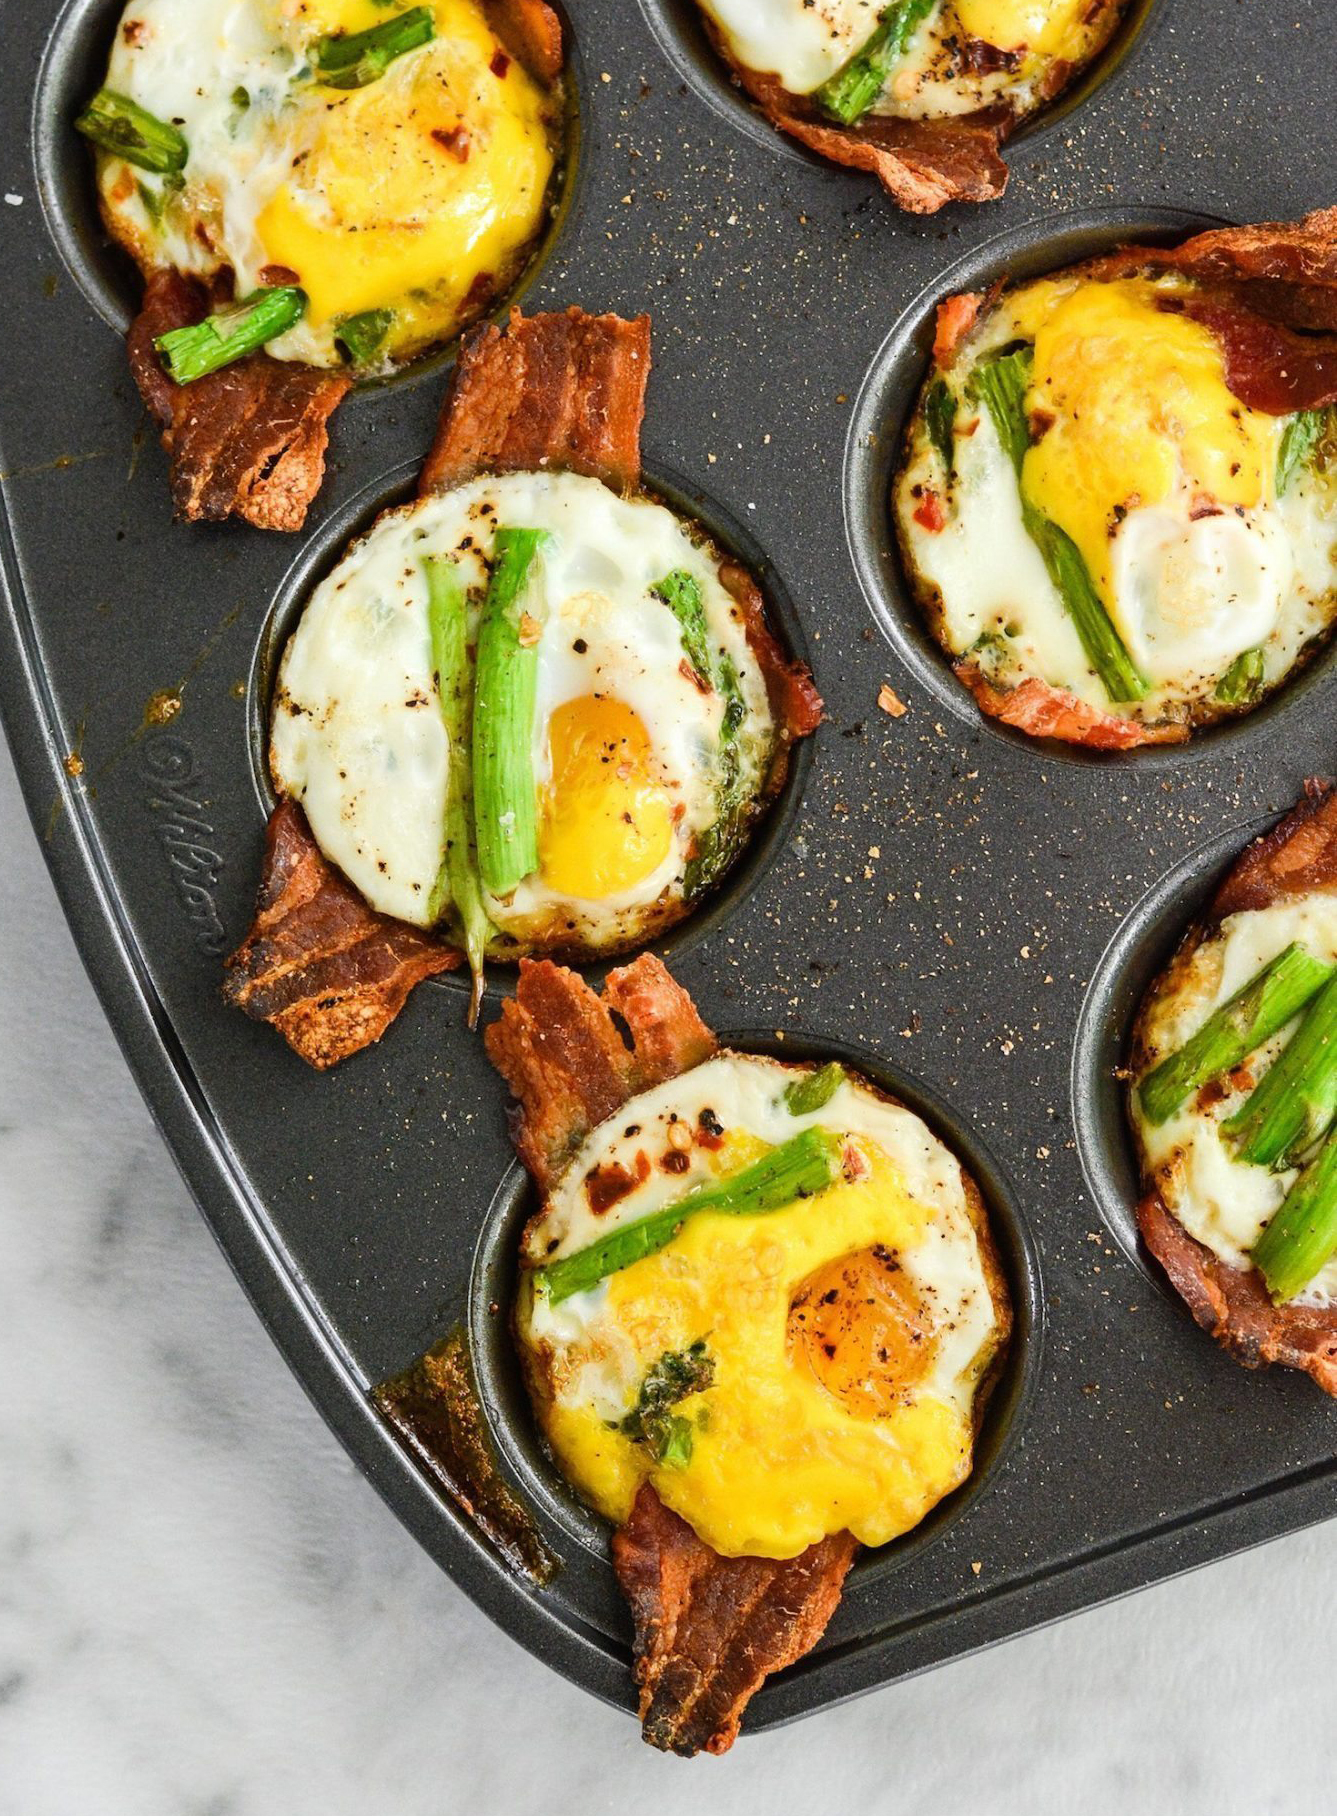 The thick-cut bacon paired with asparagus in these Paleo Egg Cups is what breakfast dreams are made of. Get the recipe.